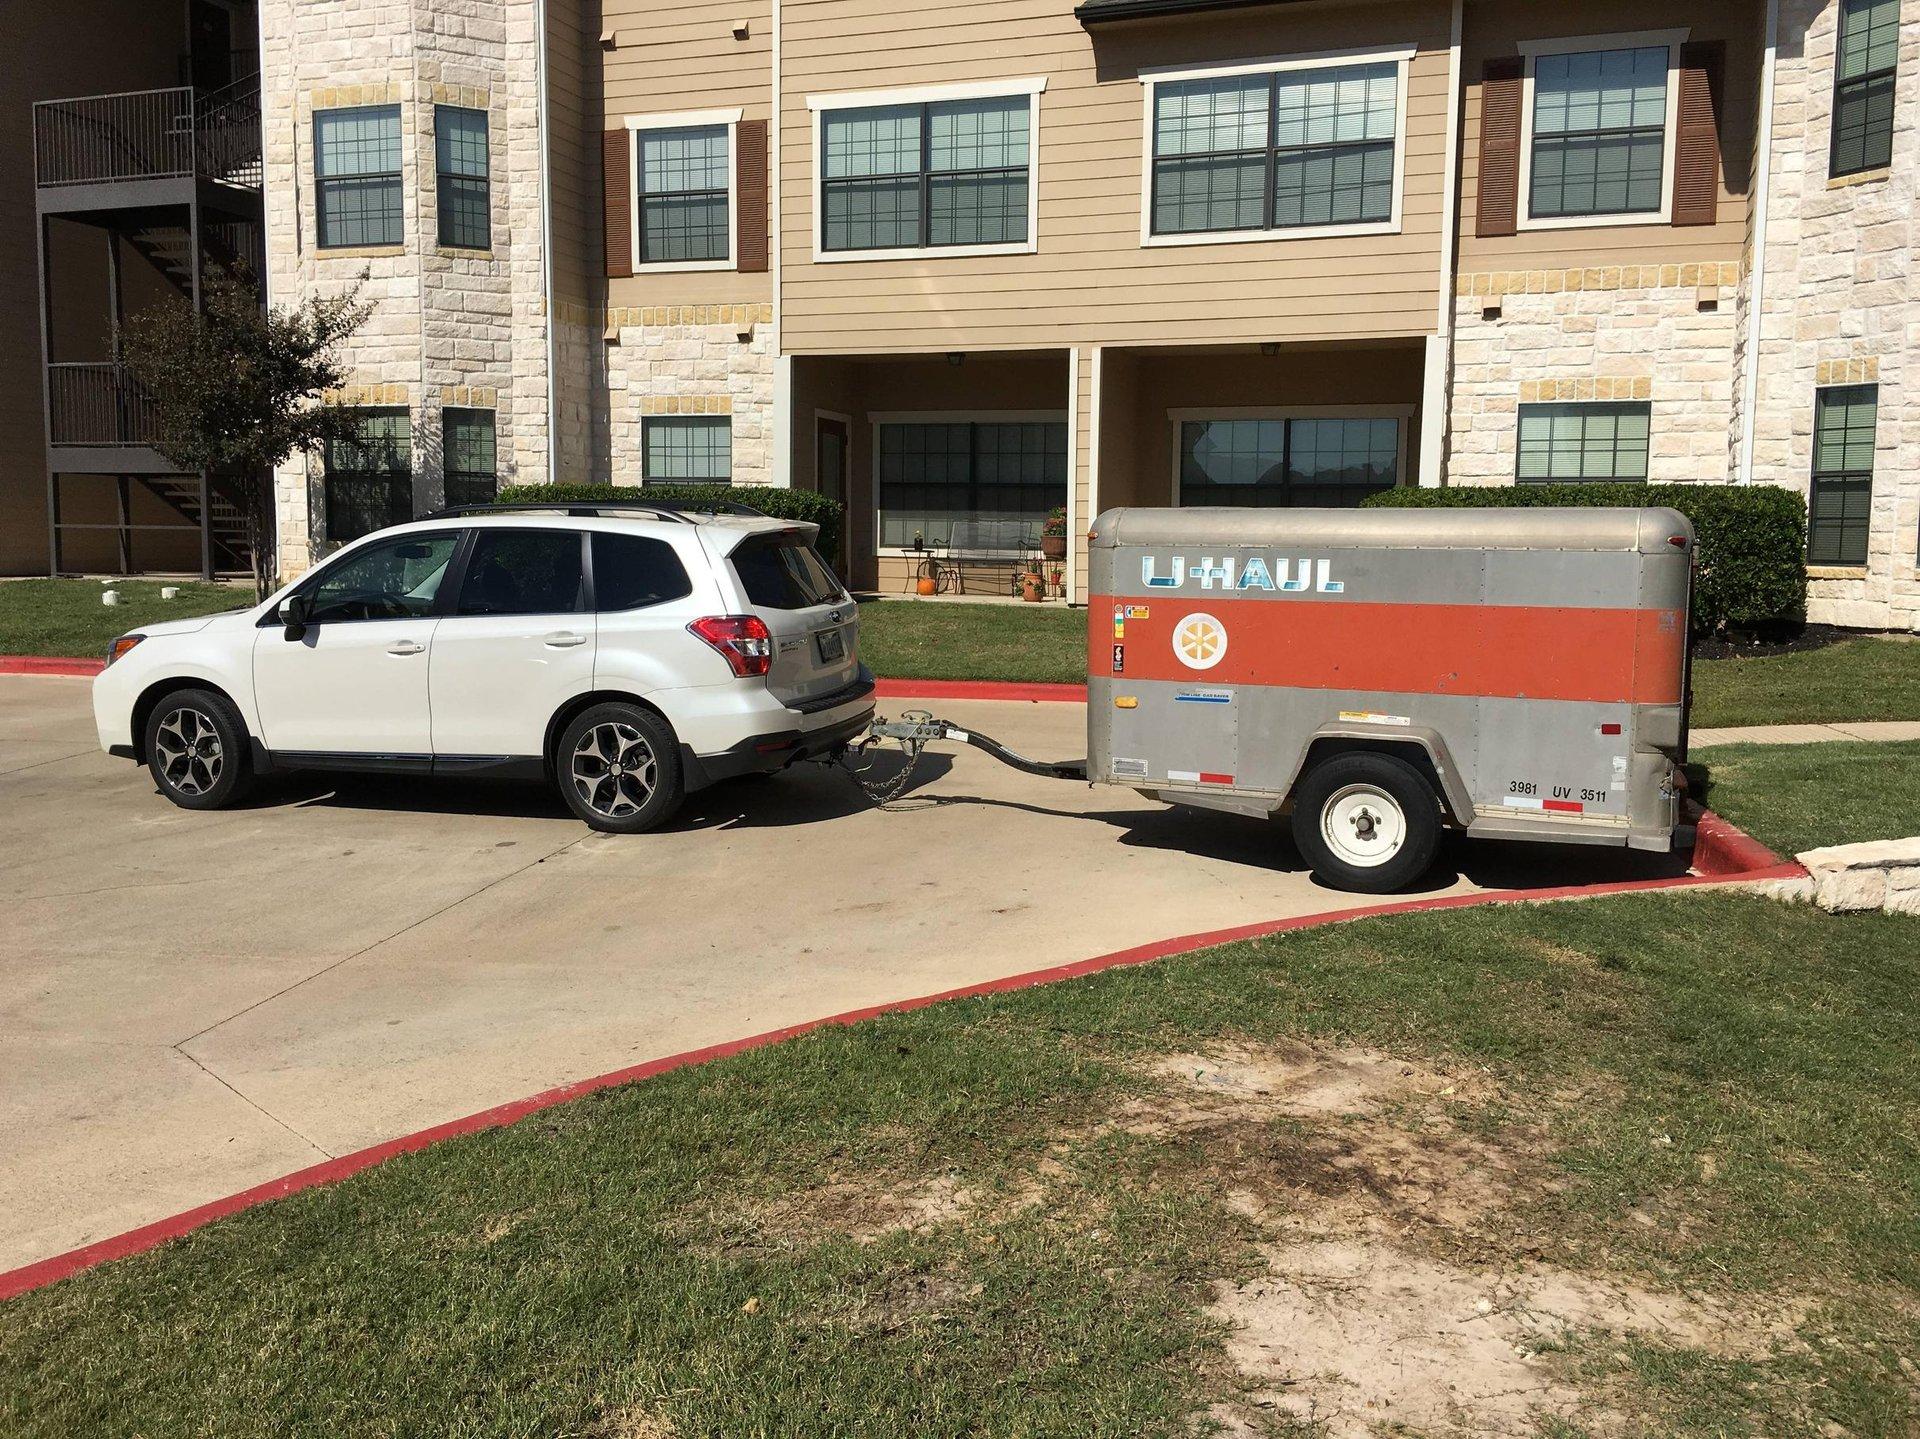 Subaru Forester Towing Capacity >> 14 18 Forester Xt 1200 Mile Towing Adventure Subaru Forester